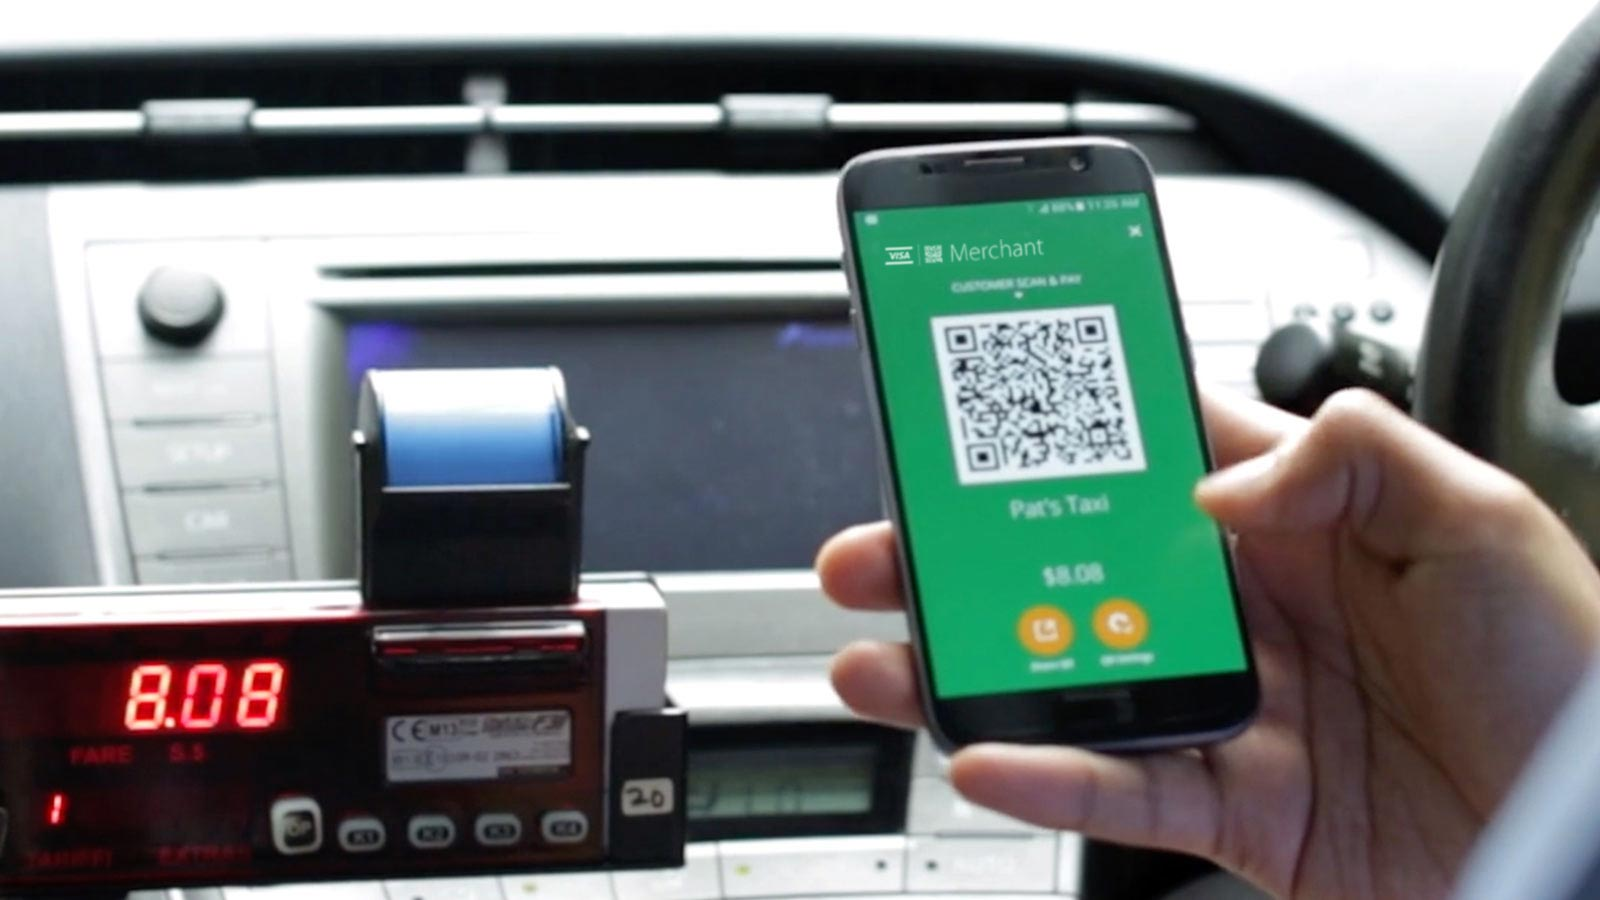 Use Scan to pay in taxi cabs